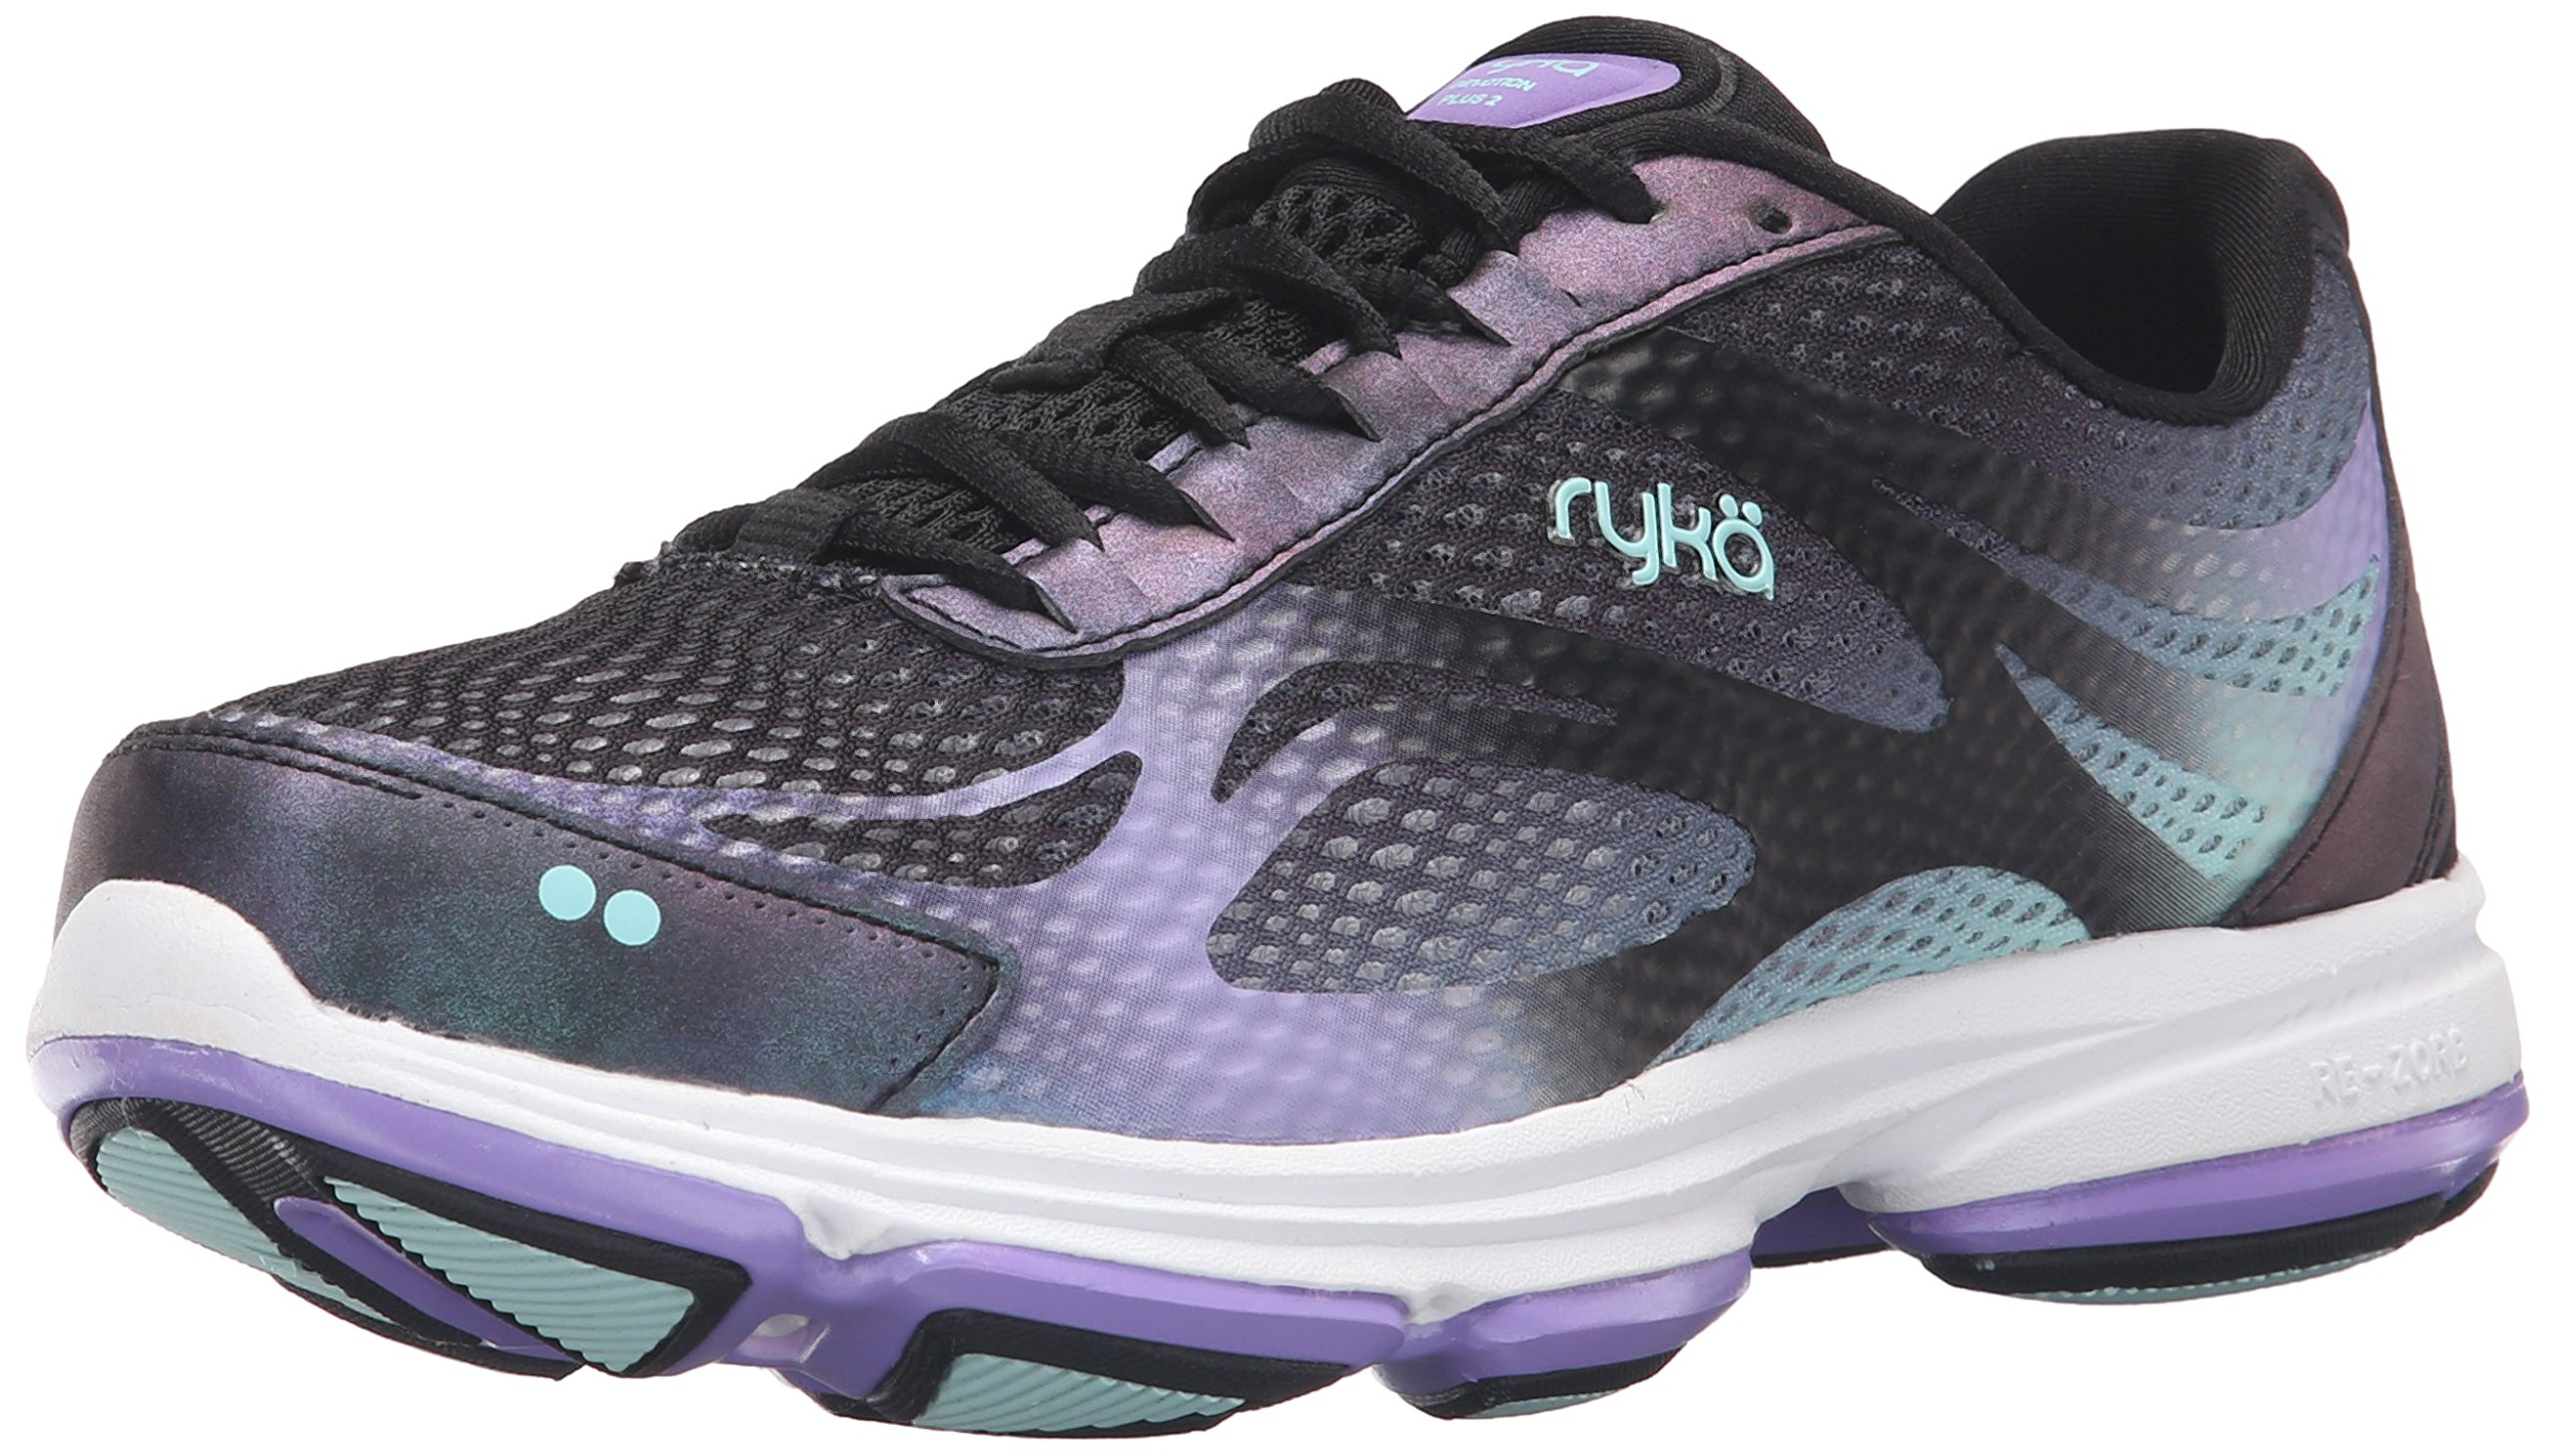 Ryka Women's Devotion Plus 2 Walking Shoe, Black/Purple, 9 M US by Ryka